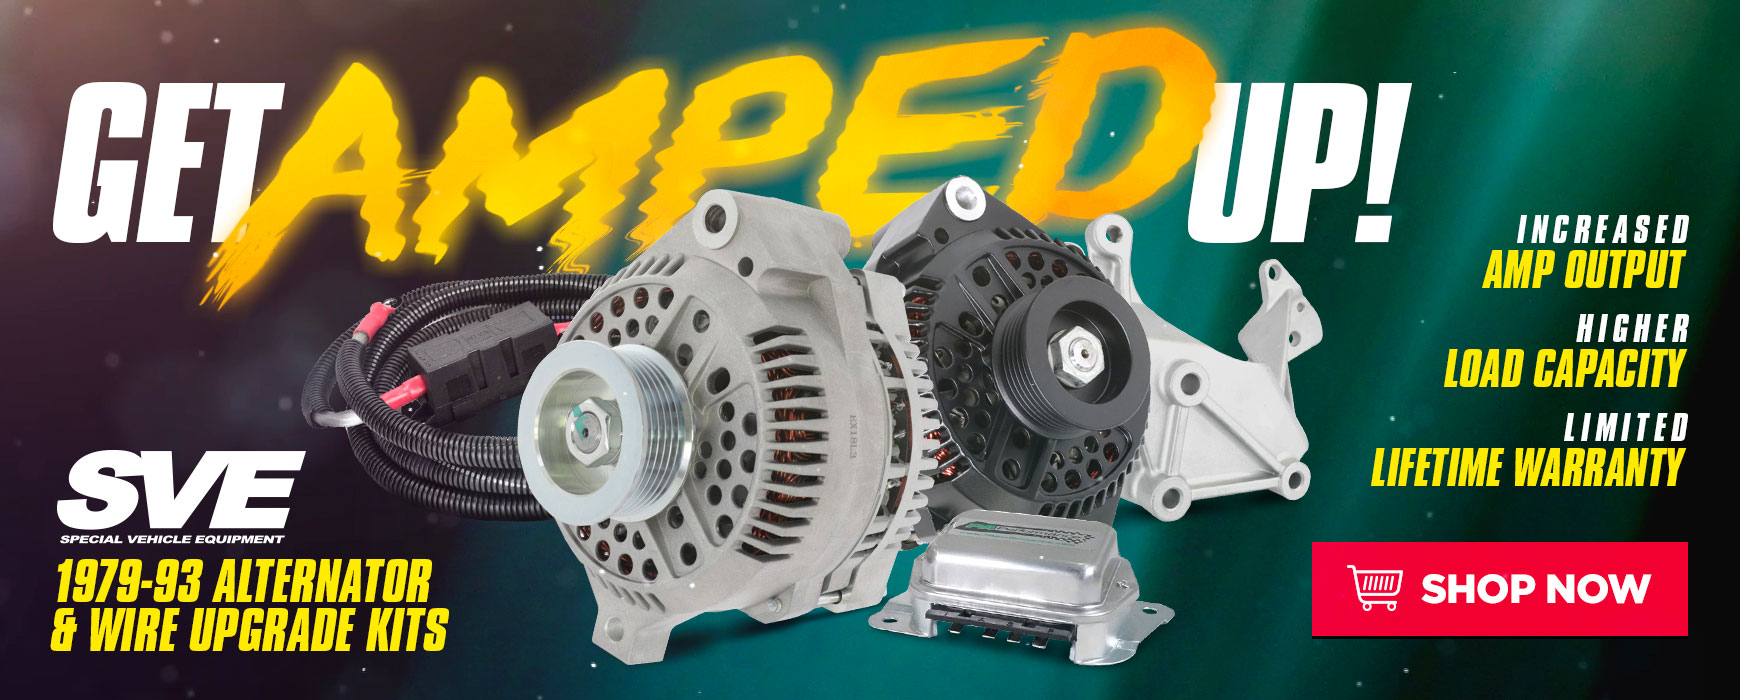 Ford Mustang SVE Fox Alternator Upgrade Kits